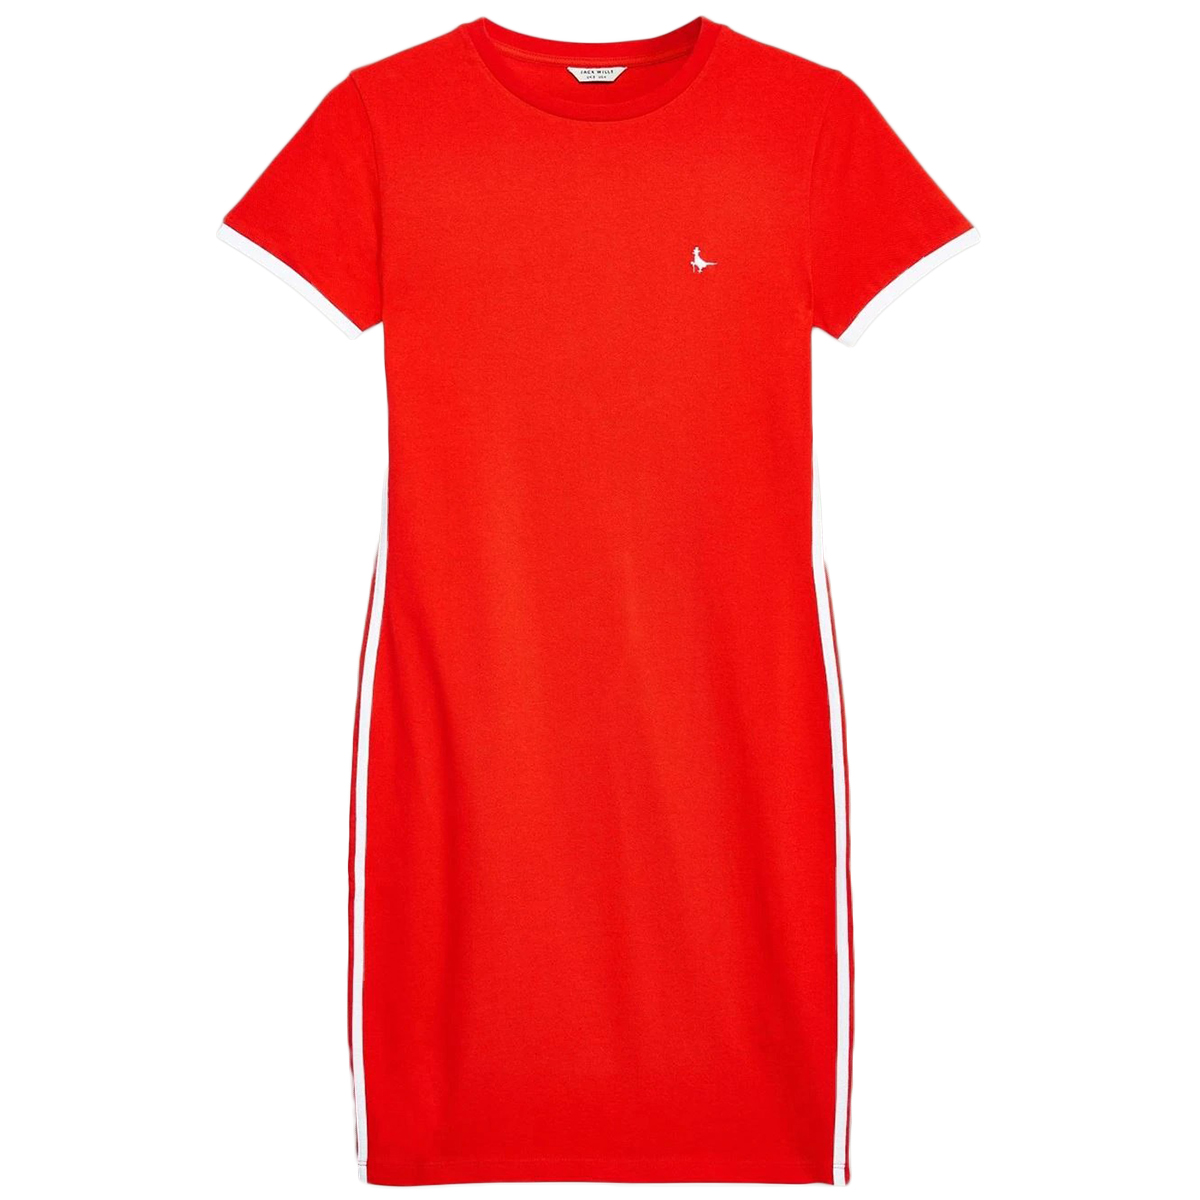 Jack Wills Women's Goodrington Side Stripe Ringer Dress - Red, 10